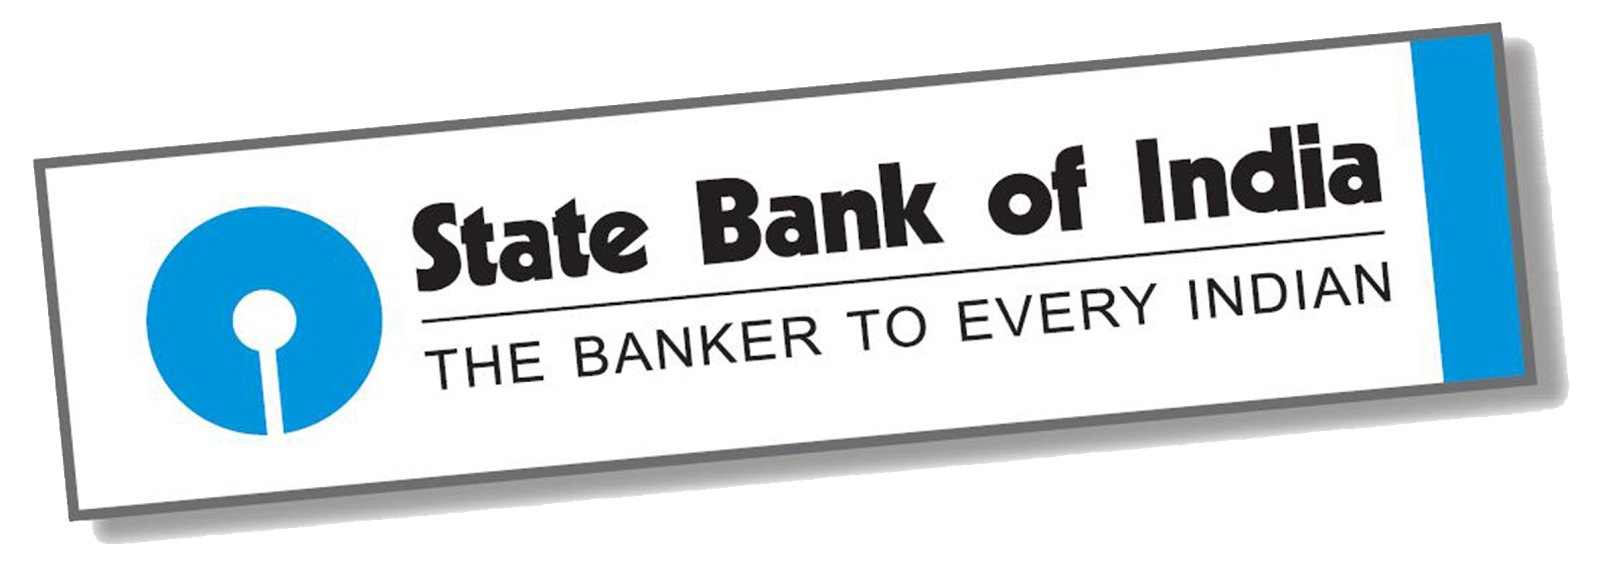 sbi Online Form Of Bank Po Sbi on thalaivasal branch, bankati basti, india dhanbad, local headquarter, logo transparent, logo their slogans, statement format, alathur branch email, corporate offices, atm card nepal, commercial papers, swot analysis about, account number format,